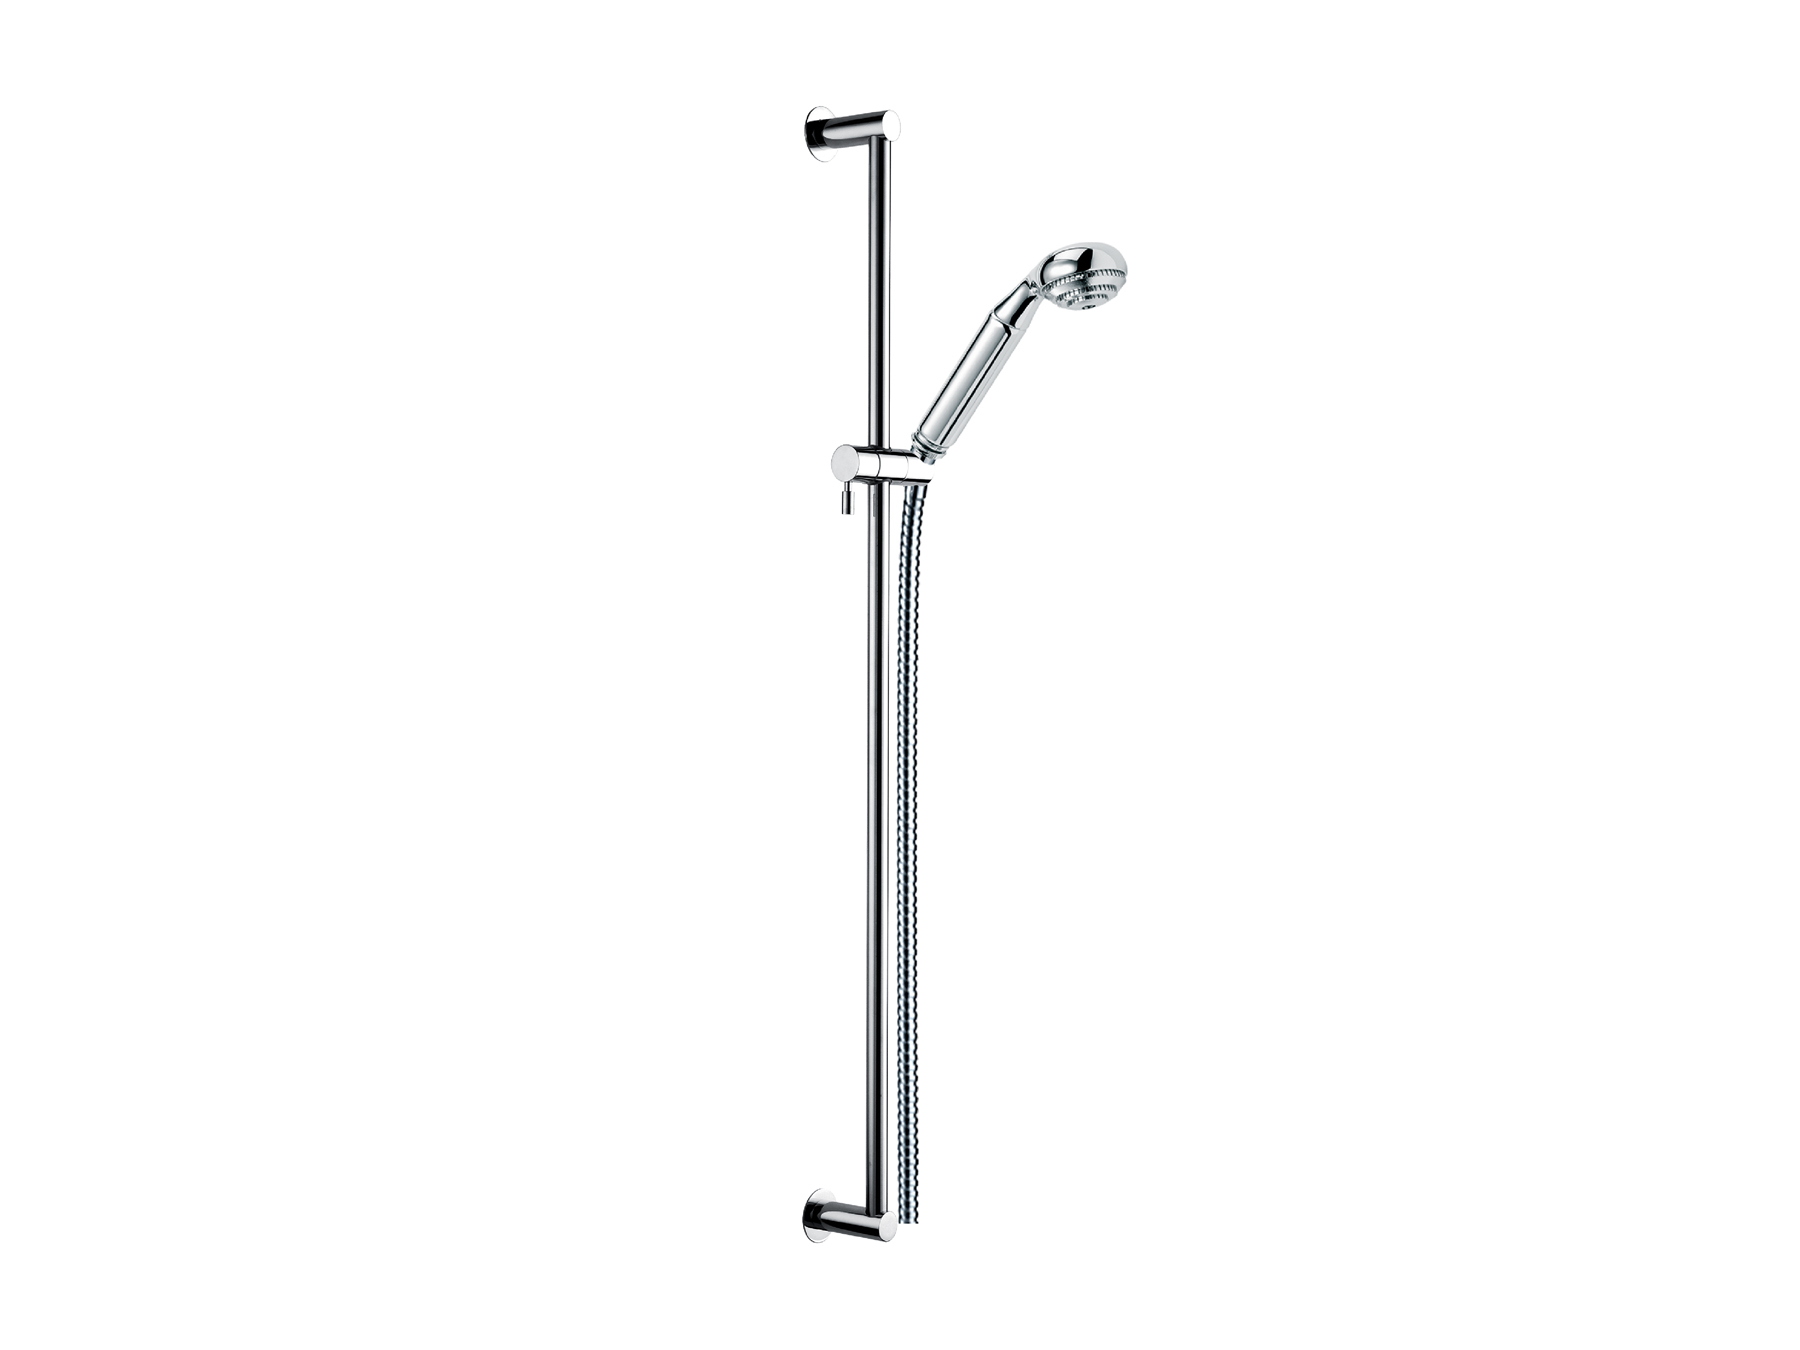 Shower arm and handshower